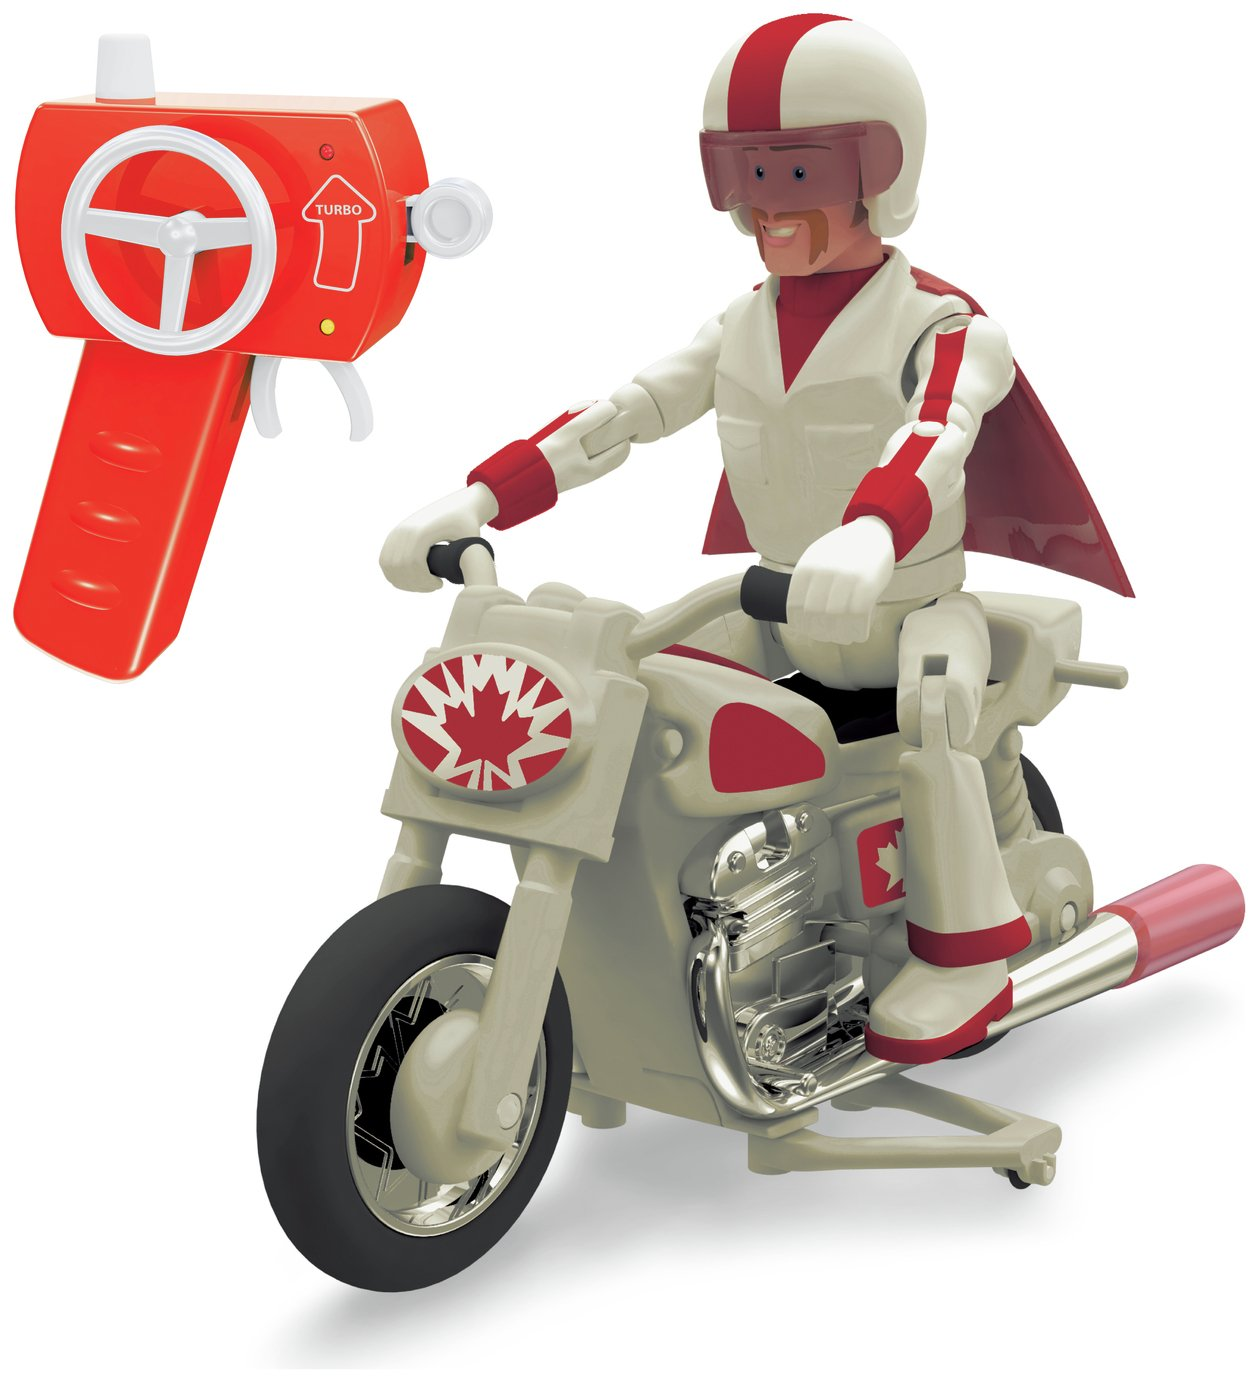 Toy Story 4 RC Duke Caboom Motorcycle Playset